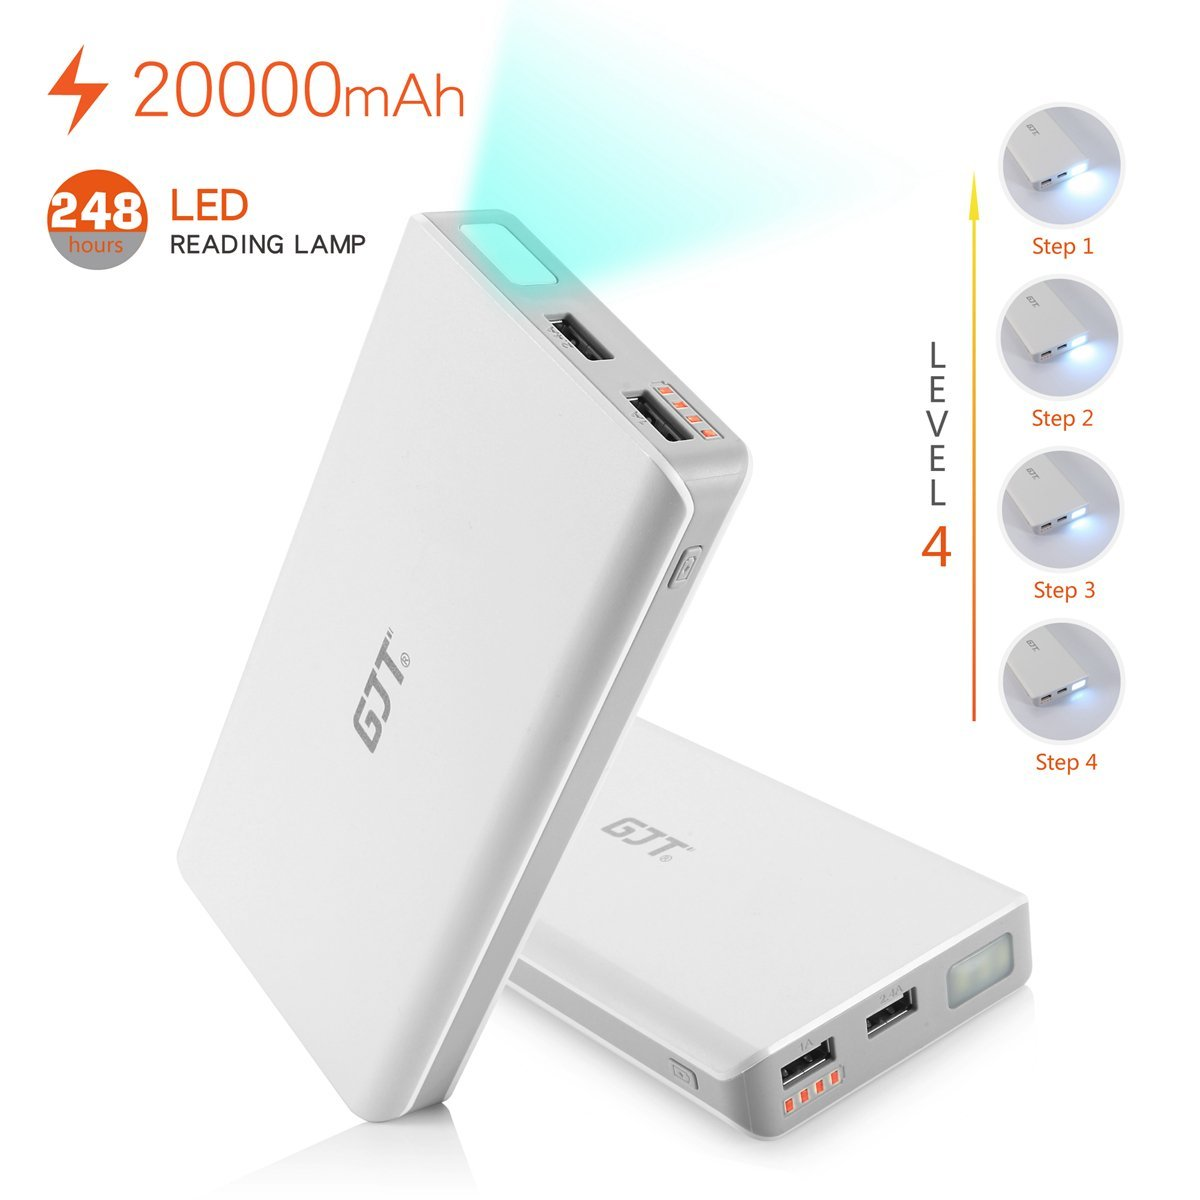 Powerbank GJT 20000MAH Dual USB External Battery Power Bank For Smartphones & Tablets - White